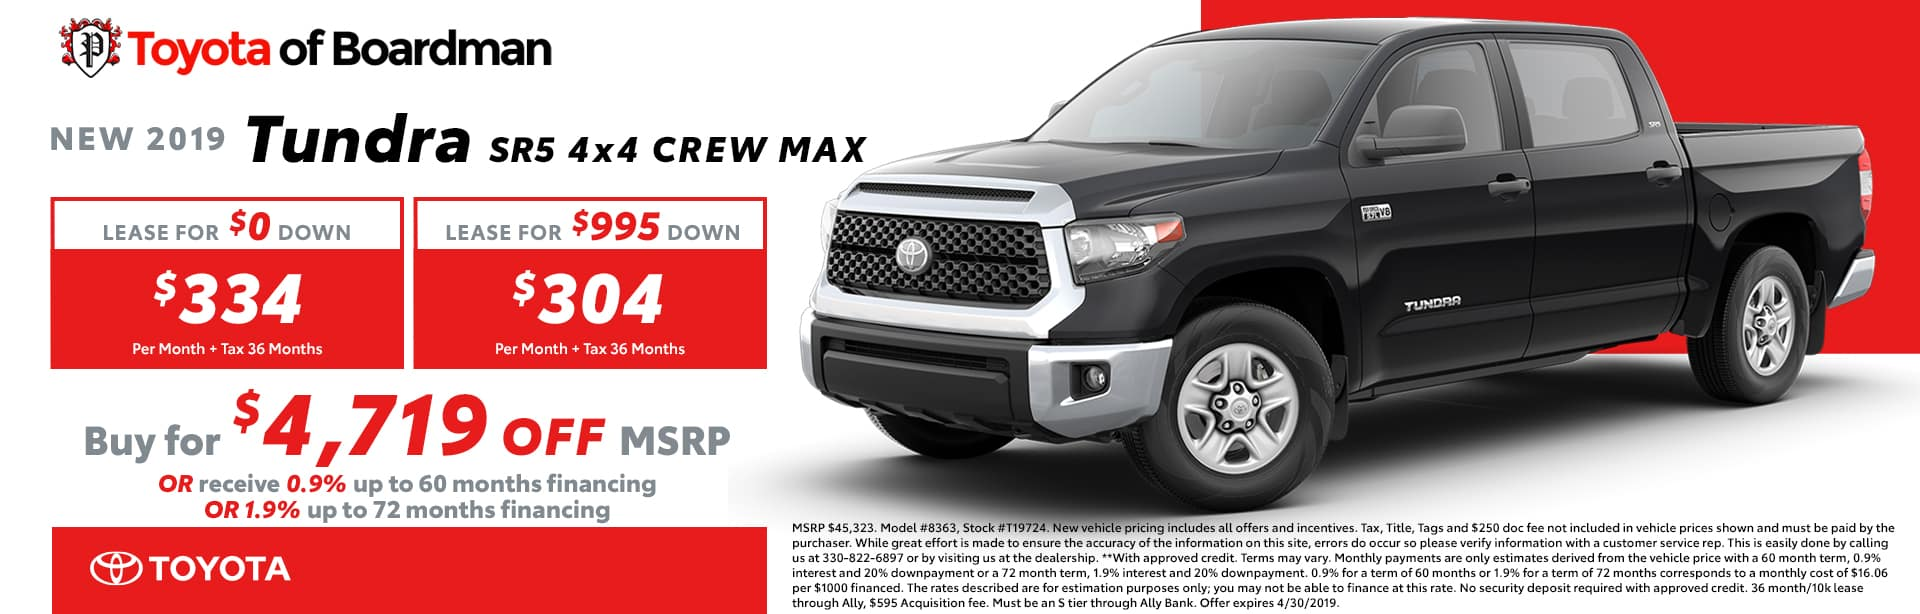 April Special on the 2019 Toyota Tundra